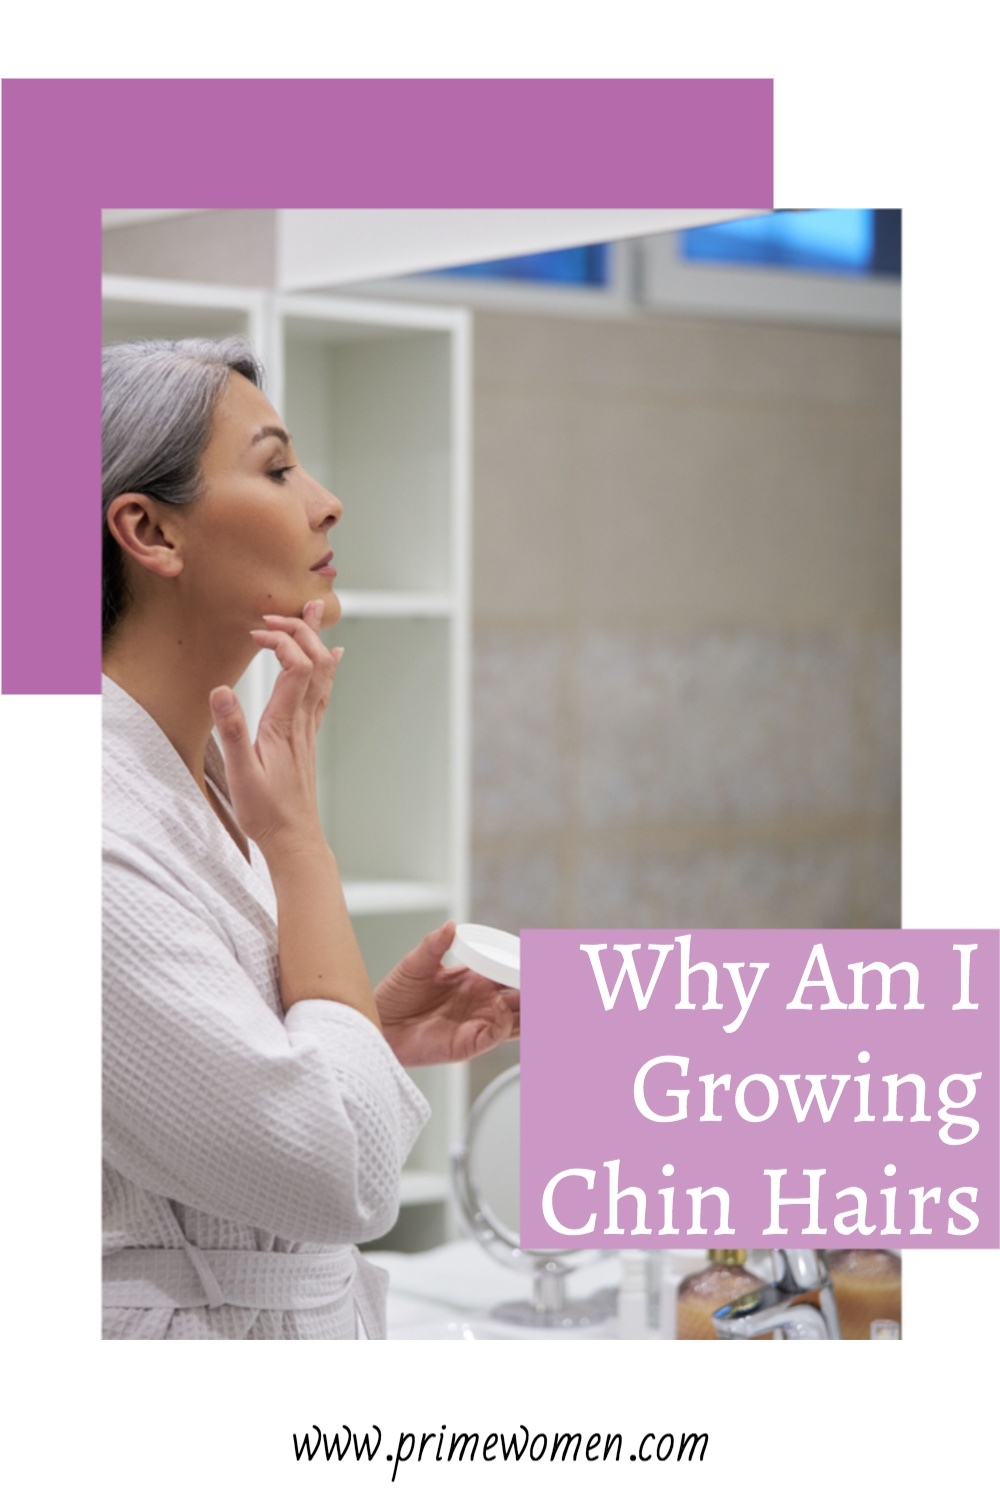 Why-Am-I-Growing-Chin-Hairs